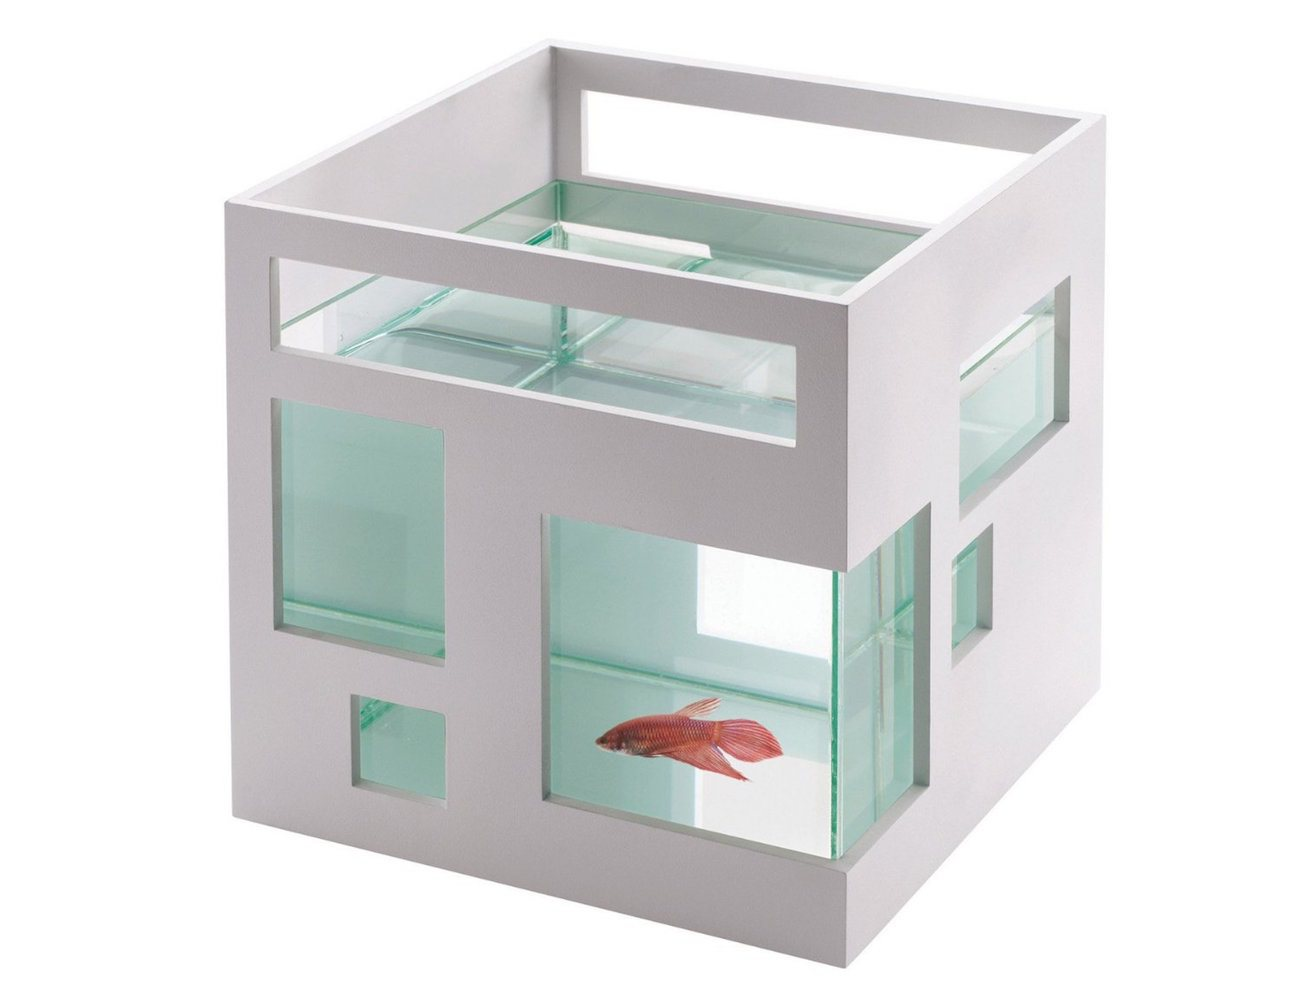 Modular Fish Hotel – Great Looking Fish Condominium